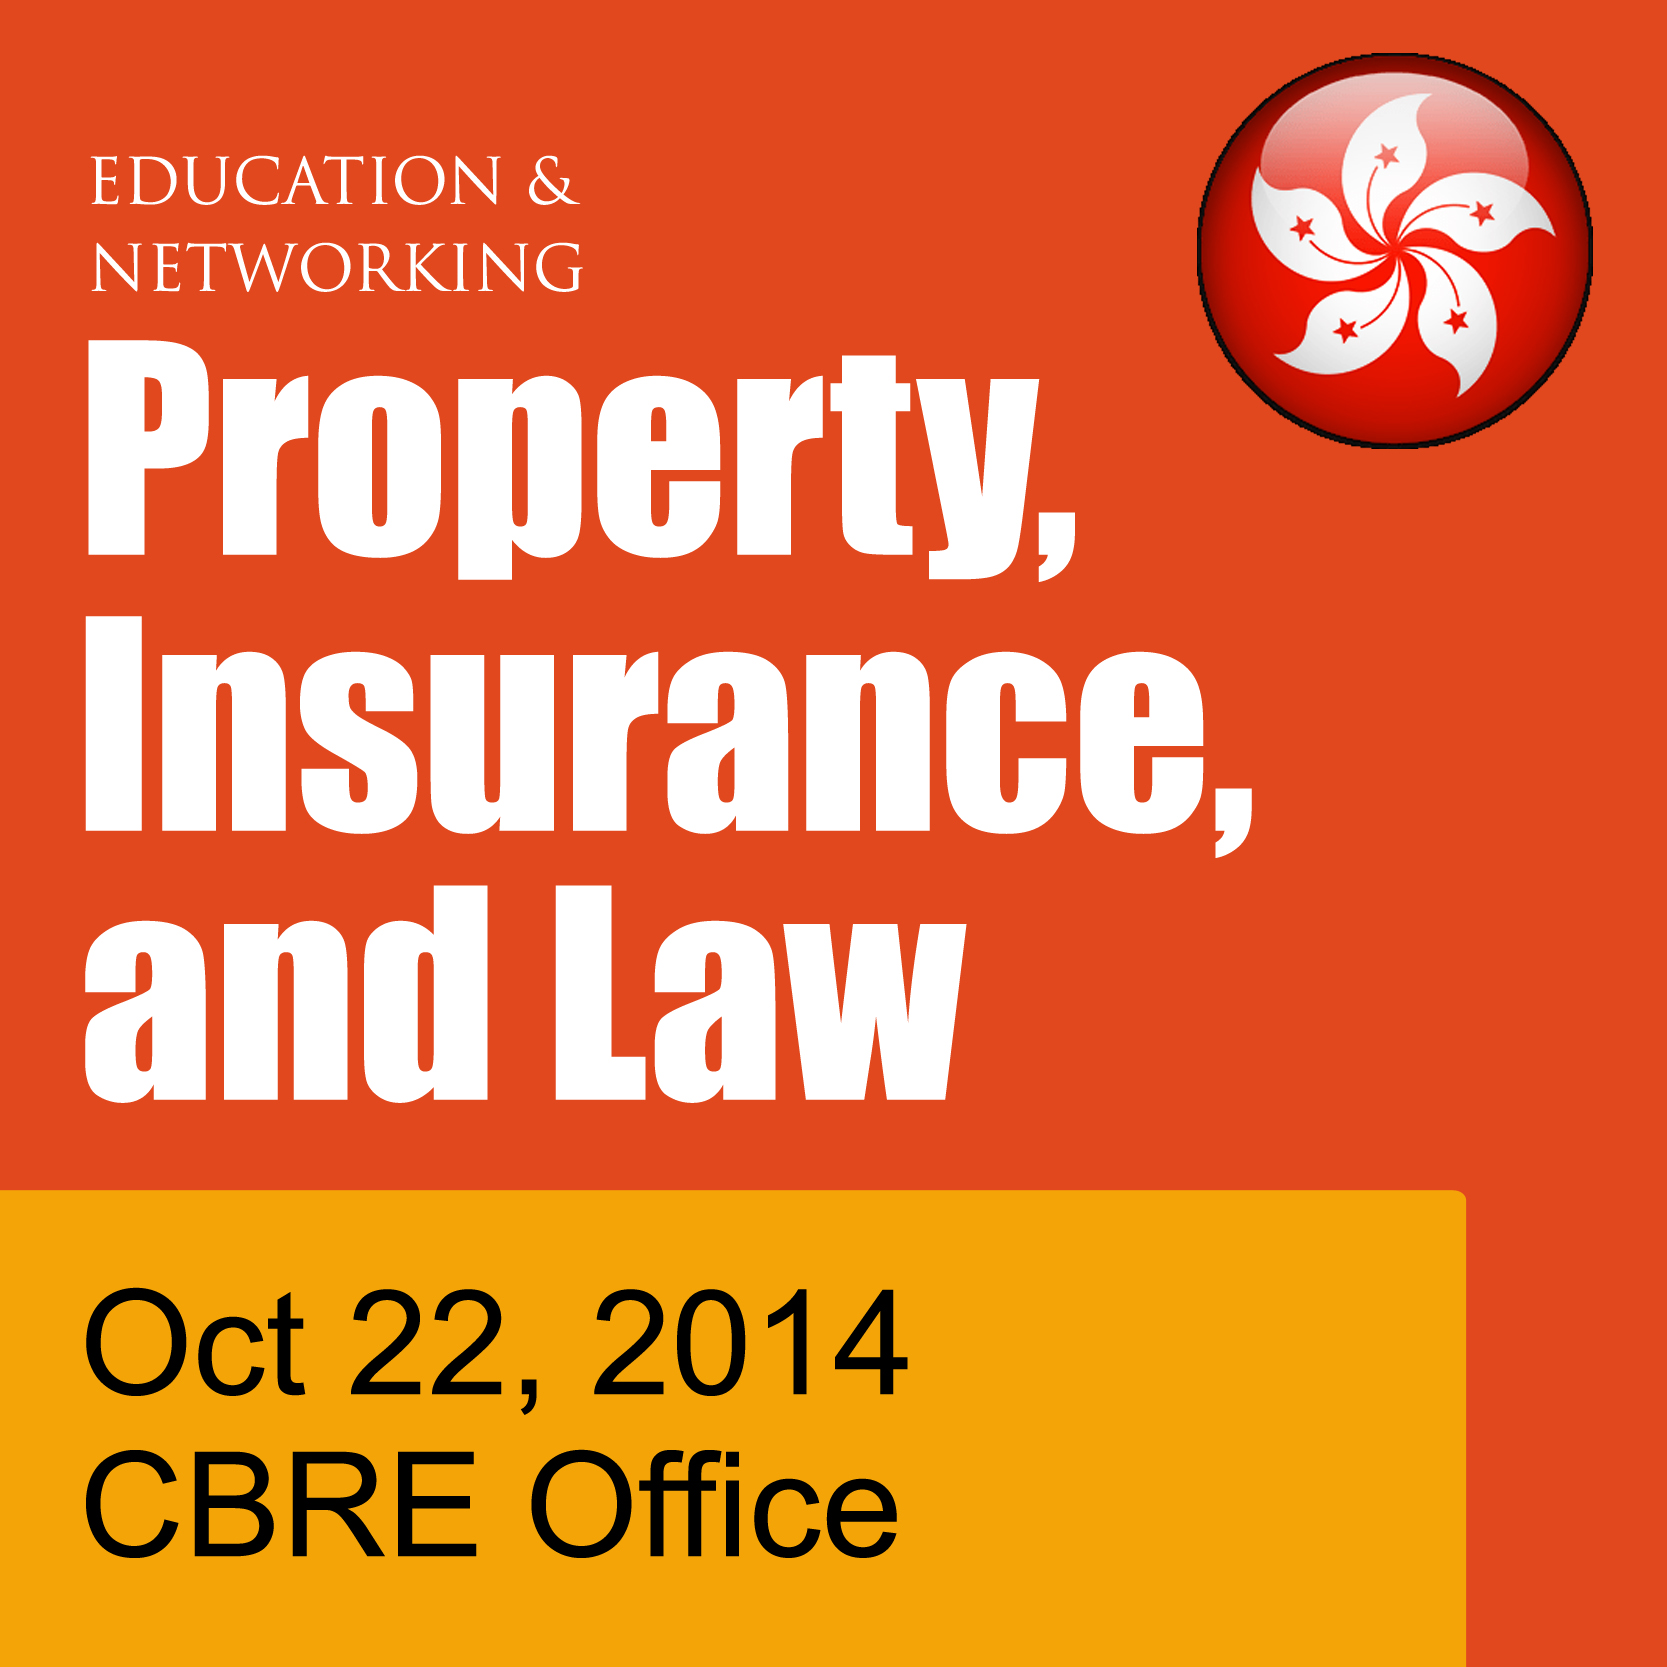 Oct 22 - Education and Networking in Hong Kong - Property, Insurance and Law: Fundamentals for the business of Self Storage